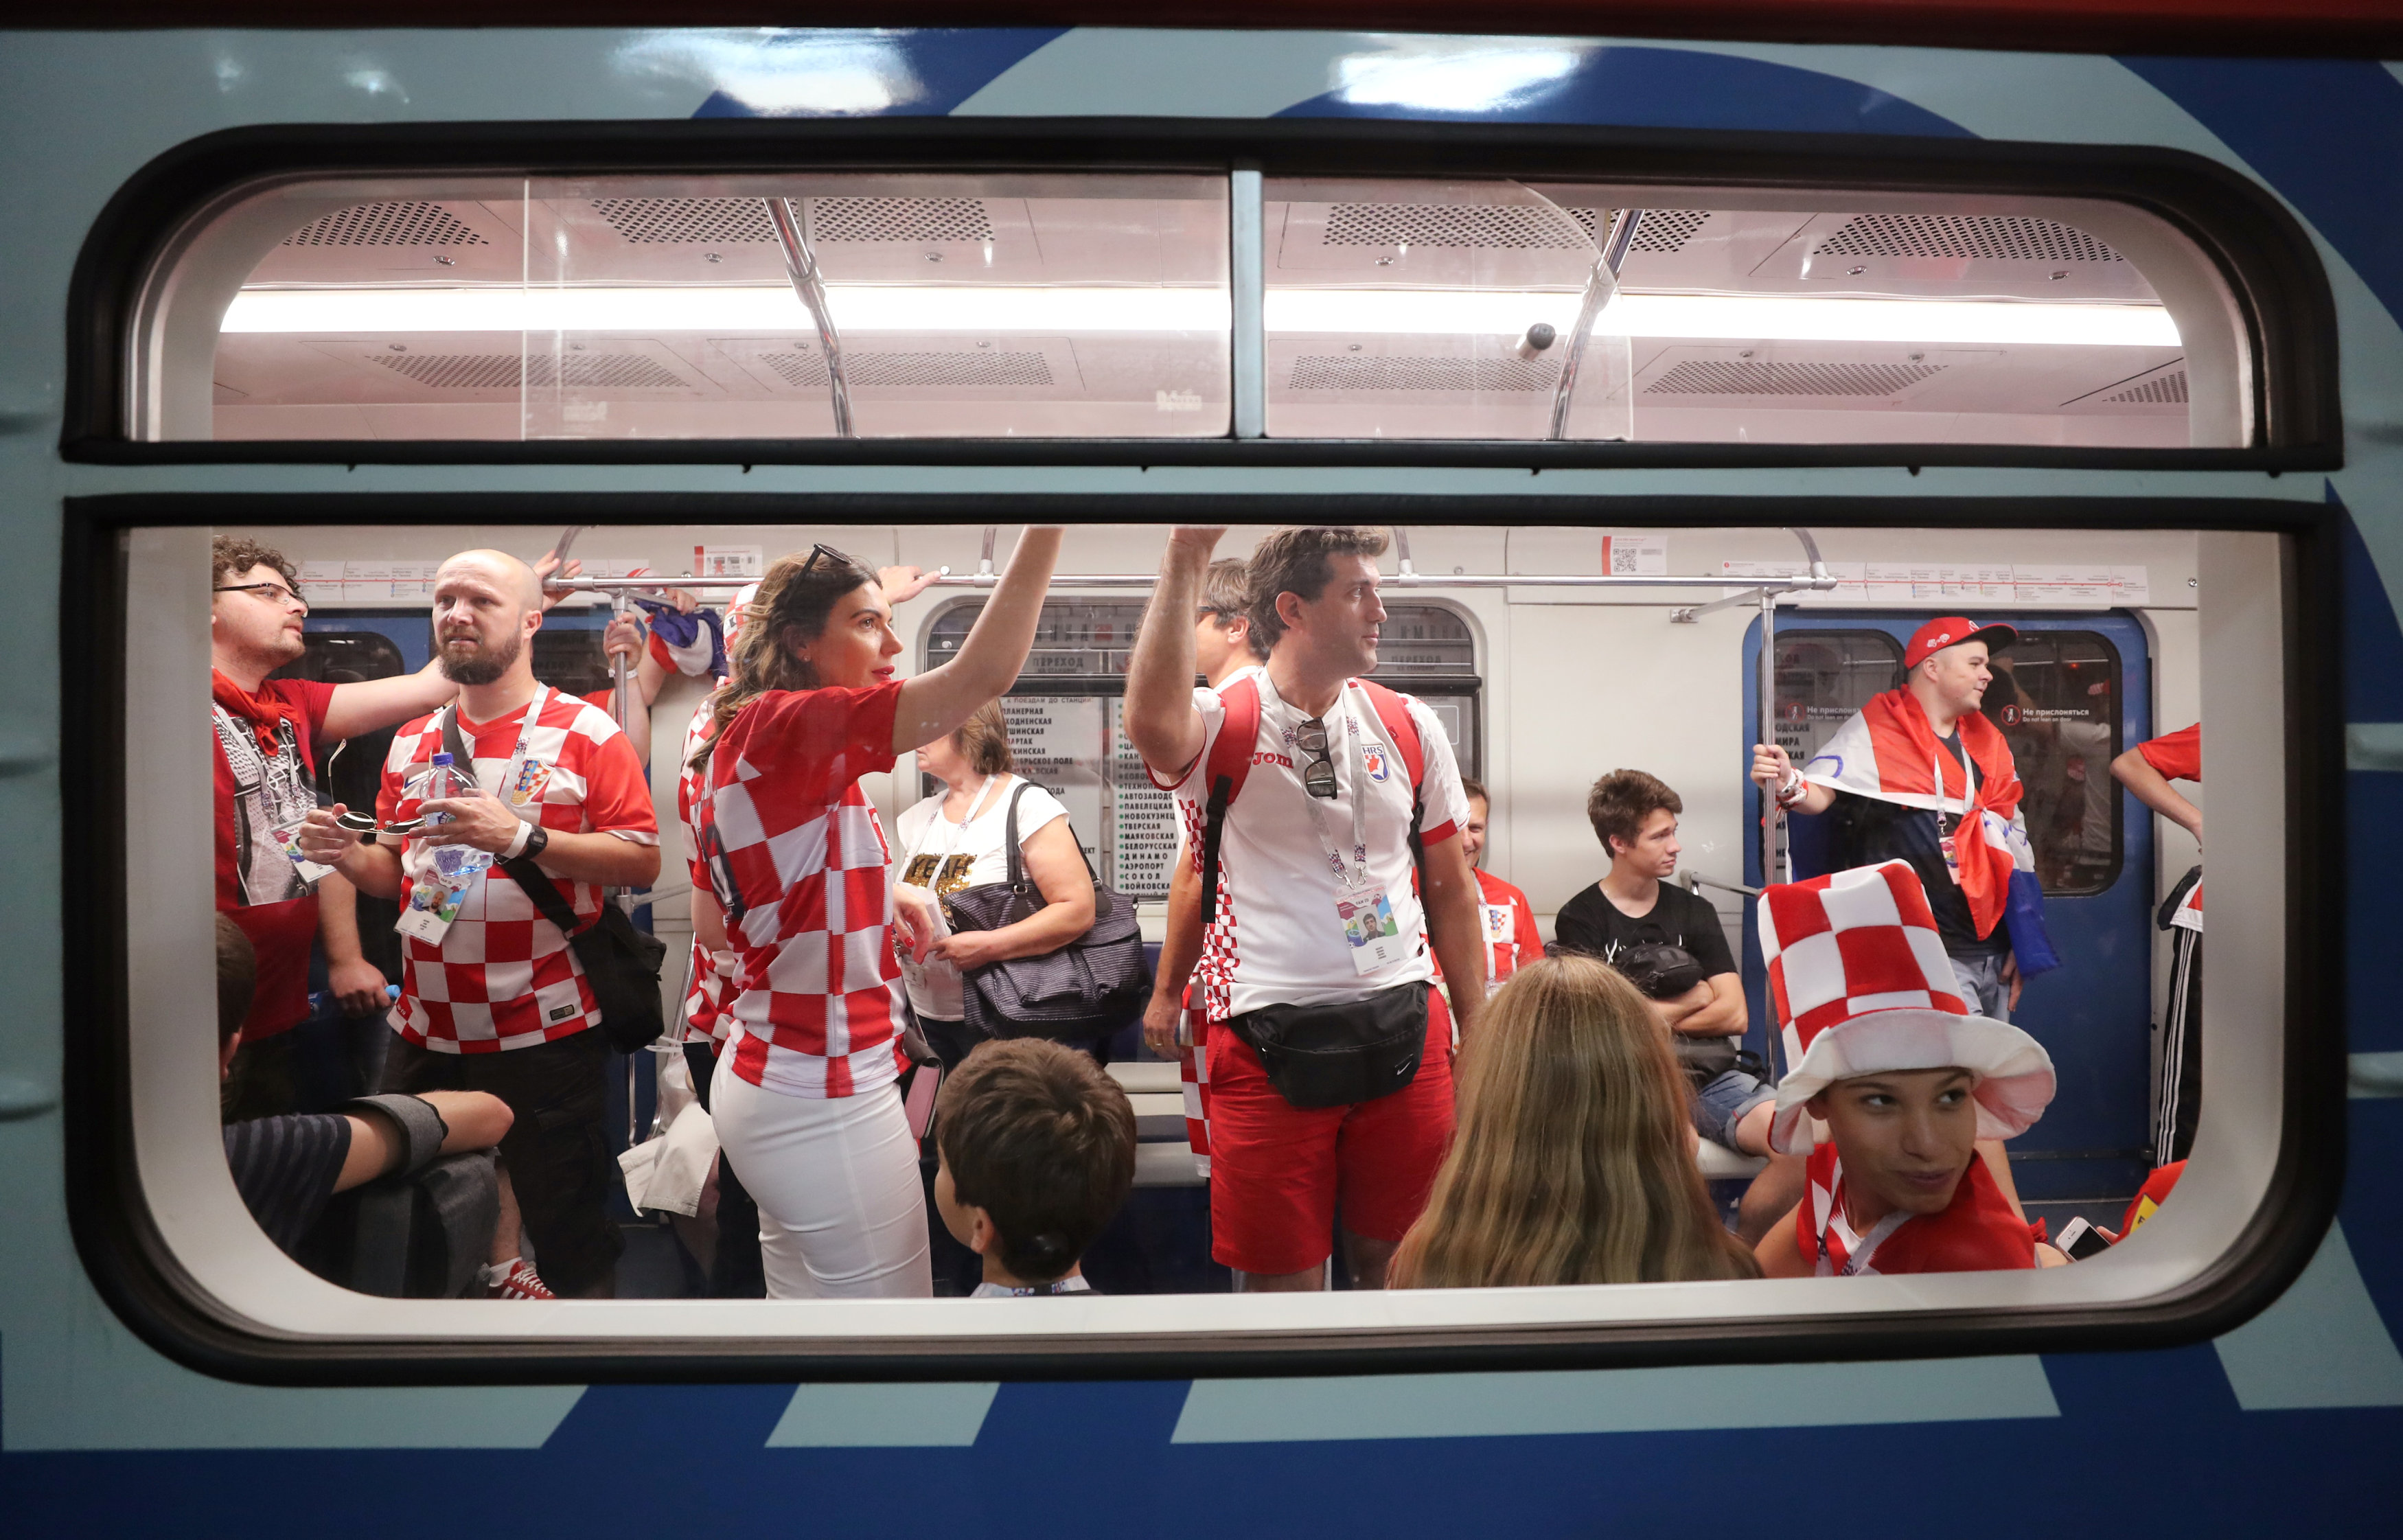 Soccer Football - World Cup - Final - France v Croatia - Moscow, Russia - July 15, 2018  Croatia fans make their way to the Luzhniki Stadium on the metro.   Photo: REUTERS